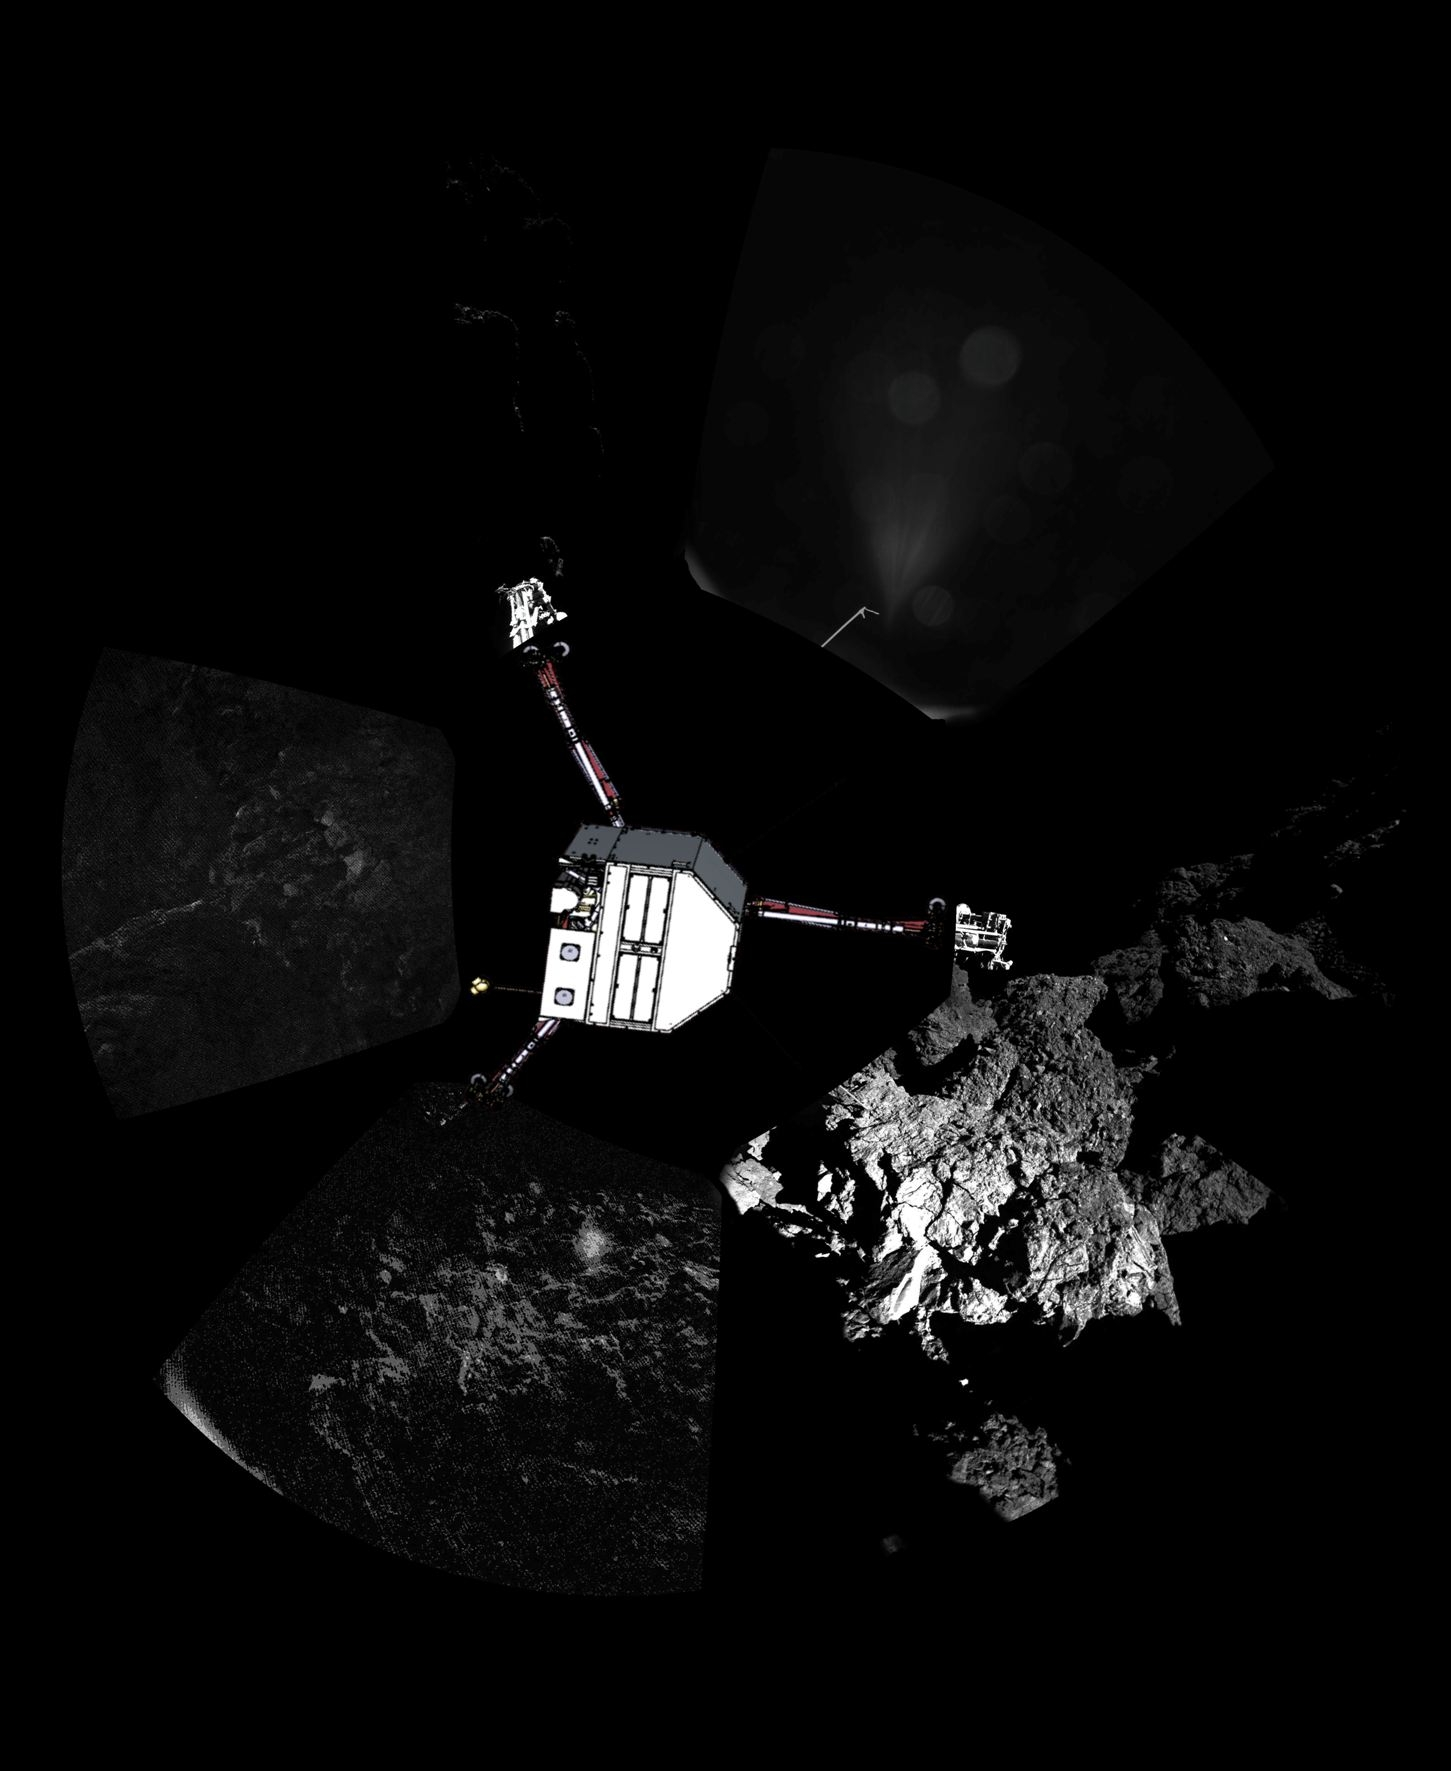 p11565_4c37a86064fe15003965c5a2bc5960eaComet_panoramic_lander_orientation.jpg